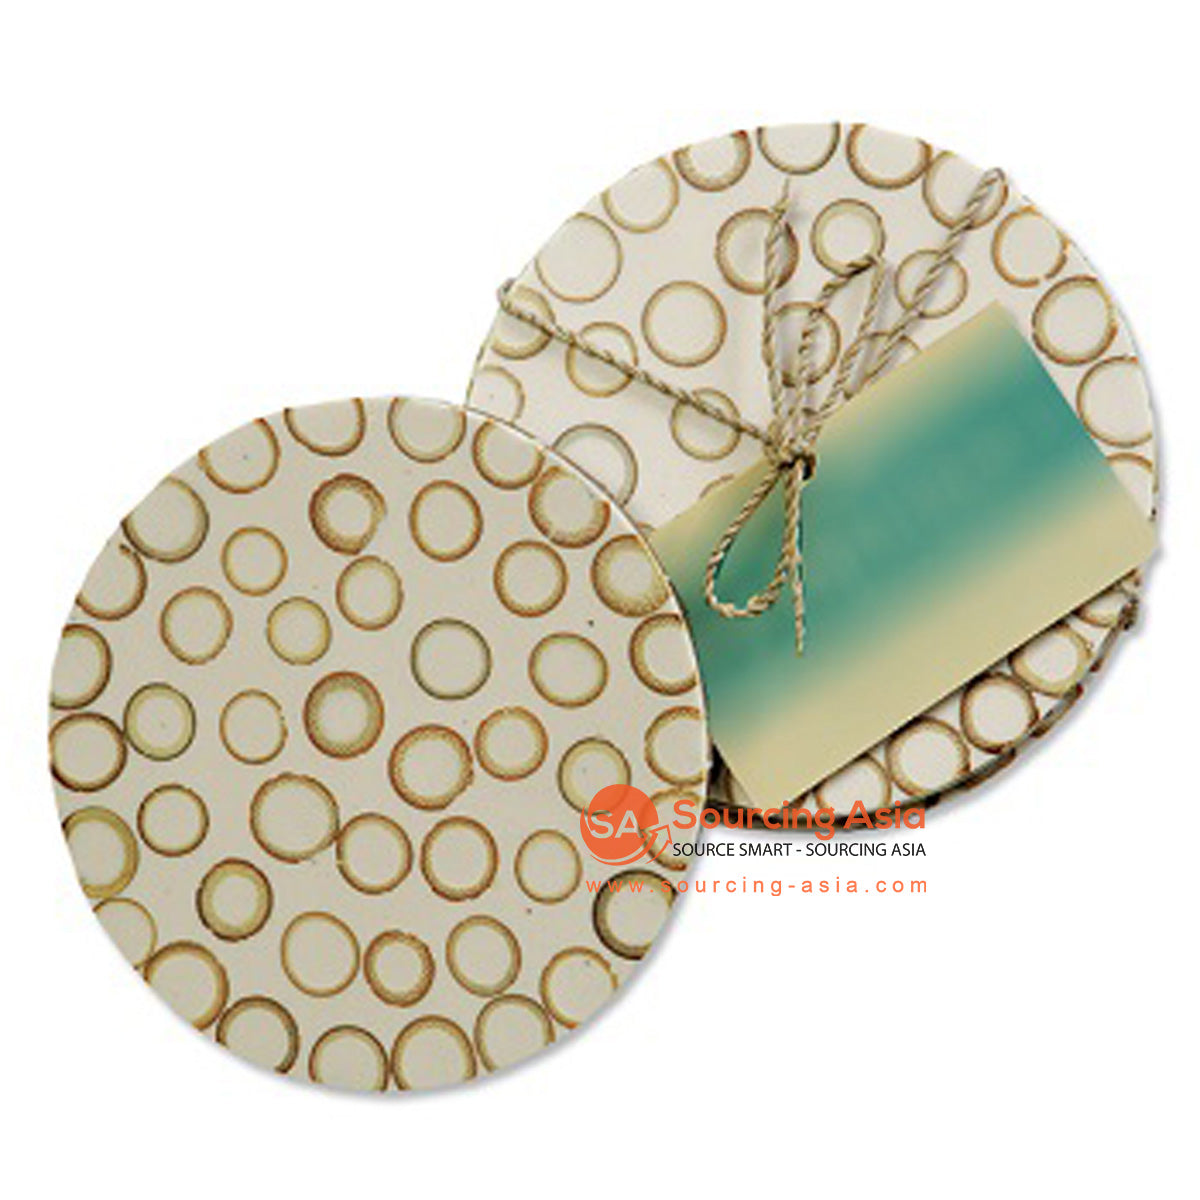 BZN005 CINNAMON AND RESIN COASTER